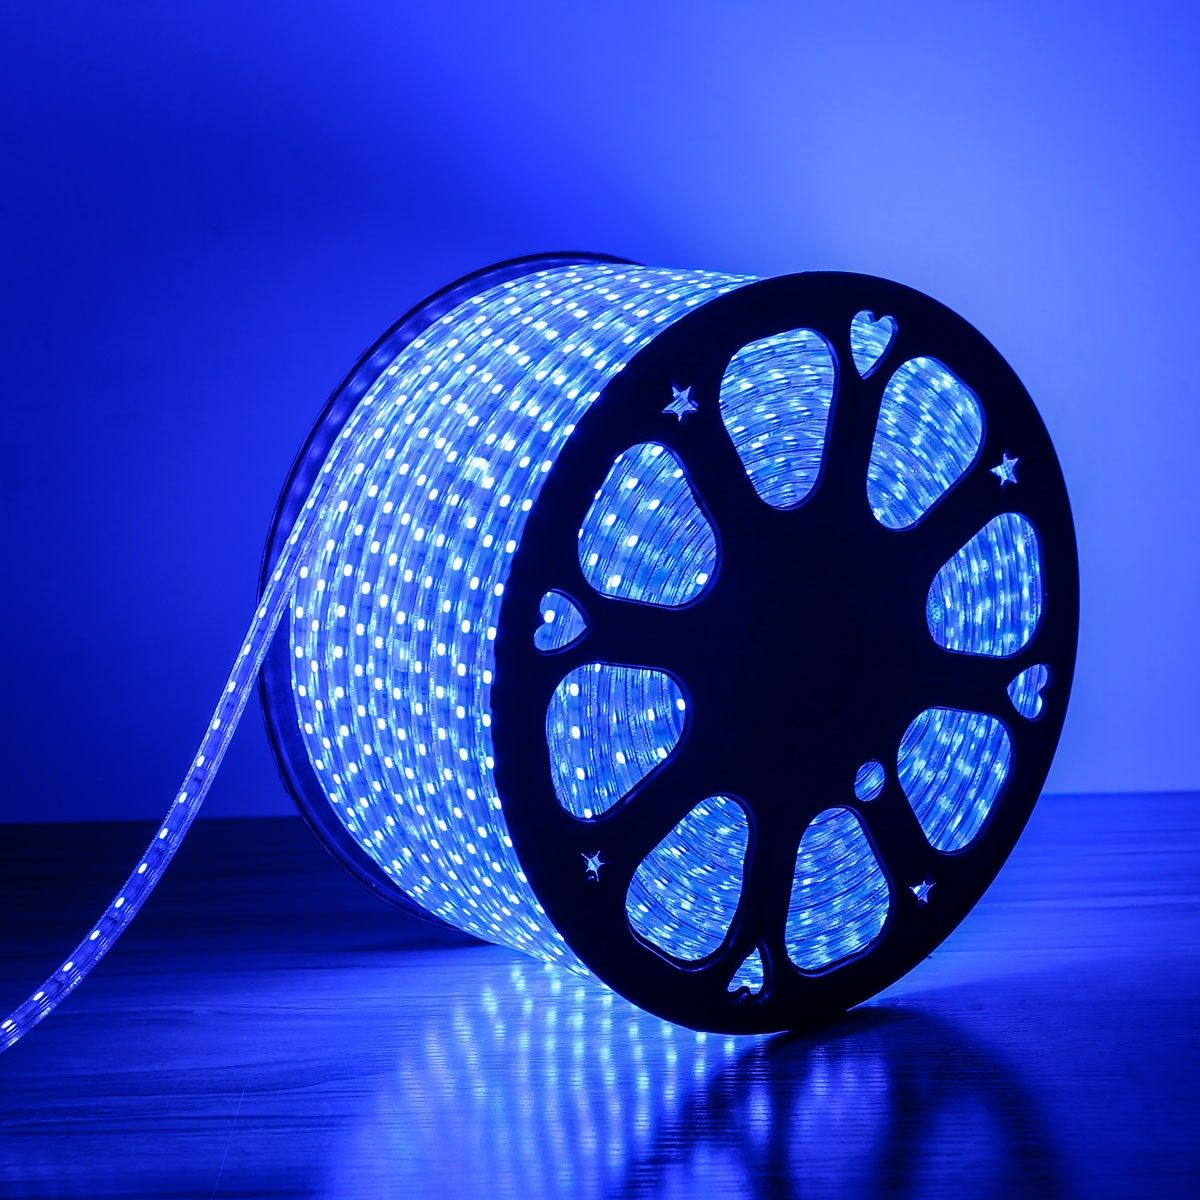 Le 110 120 V Ac Flexible Led Strip Light Kit Blue Waterproof Ip65 Outdoor Christmas Lights Led Tape Led Light Strips 164ft 50m Led Strip Lighting Strip Lighting 12v Led Strip Lights